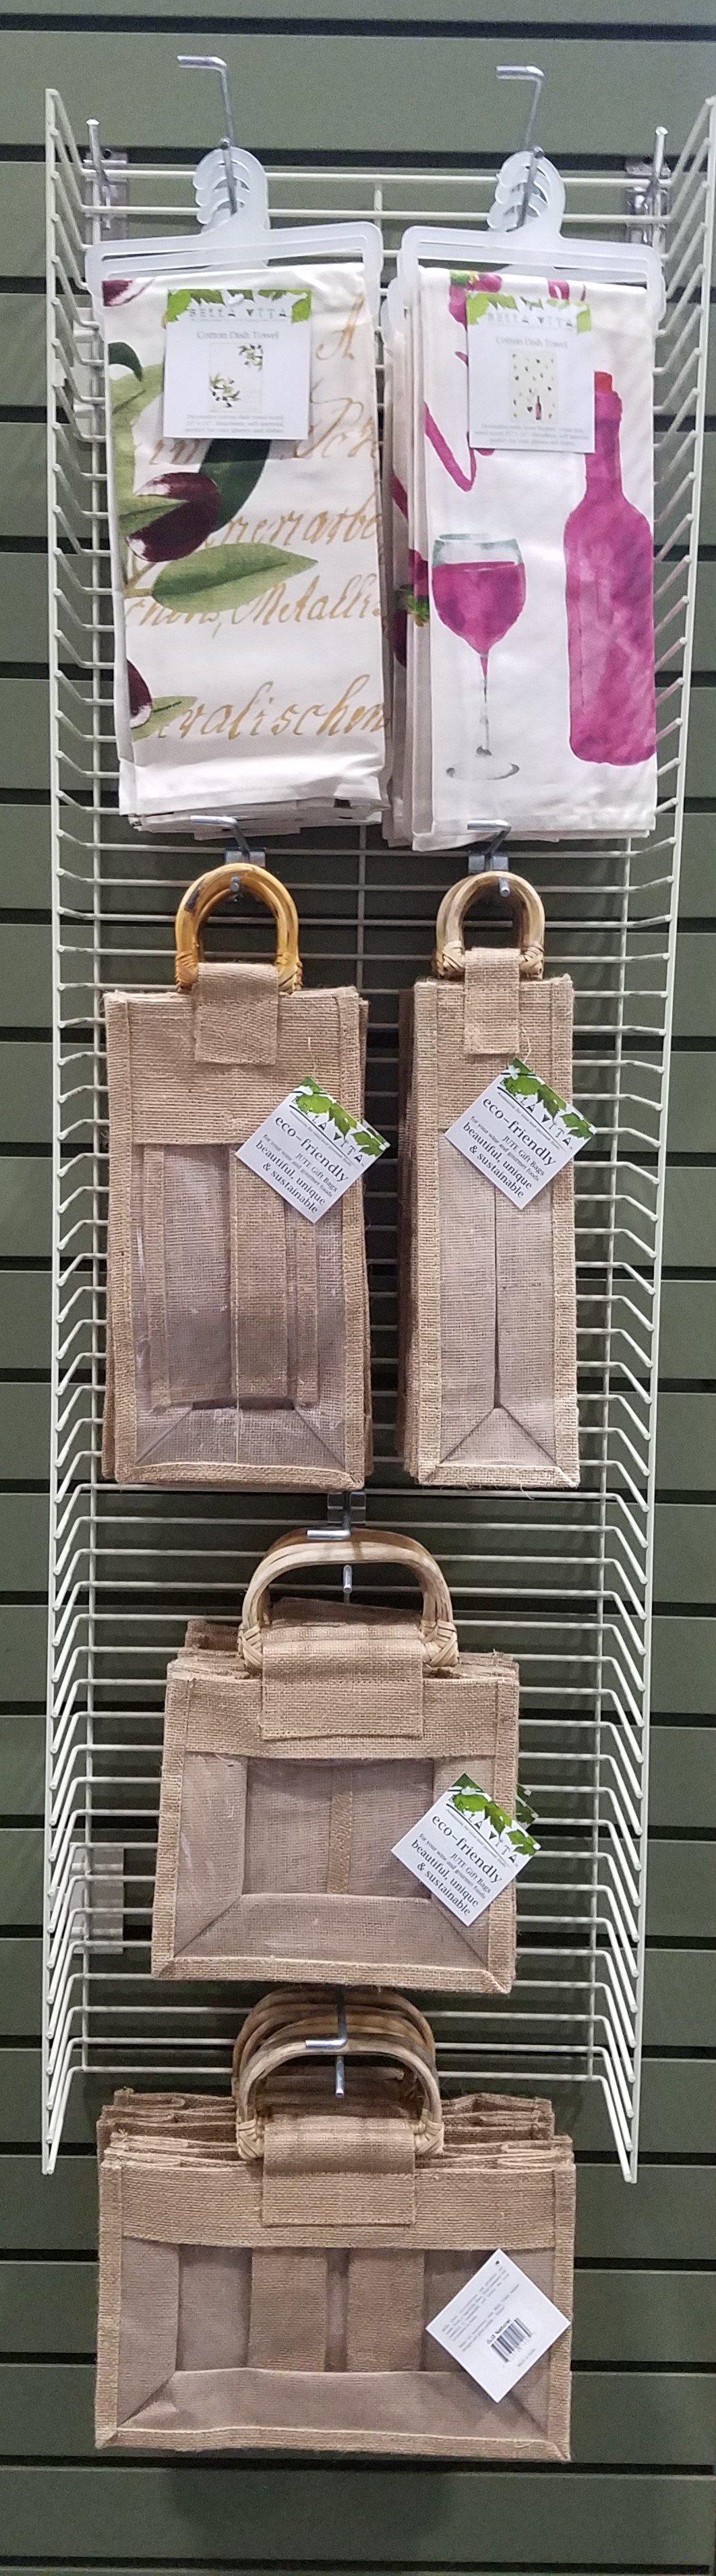 Gourmet Bag and Dish Towel Display Panel